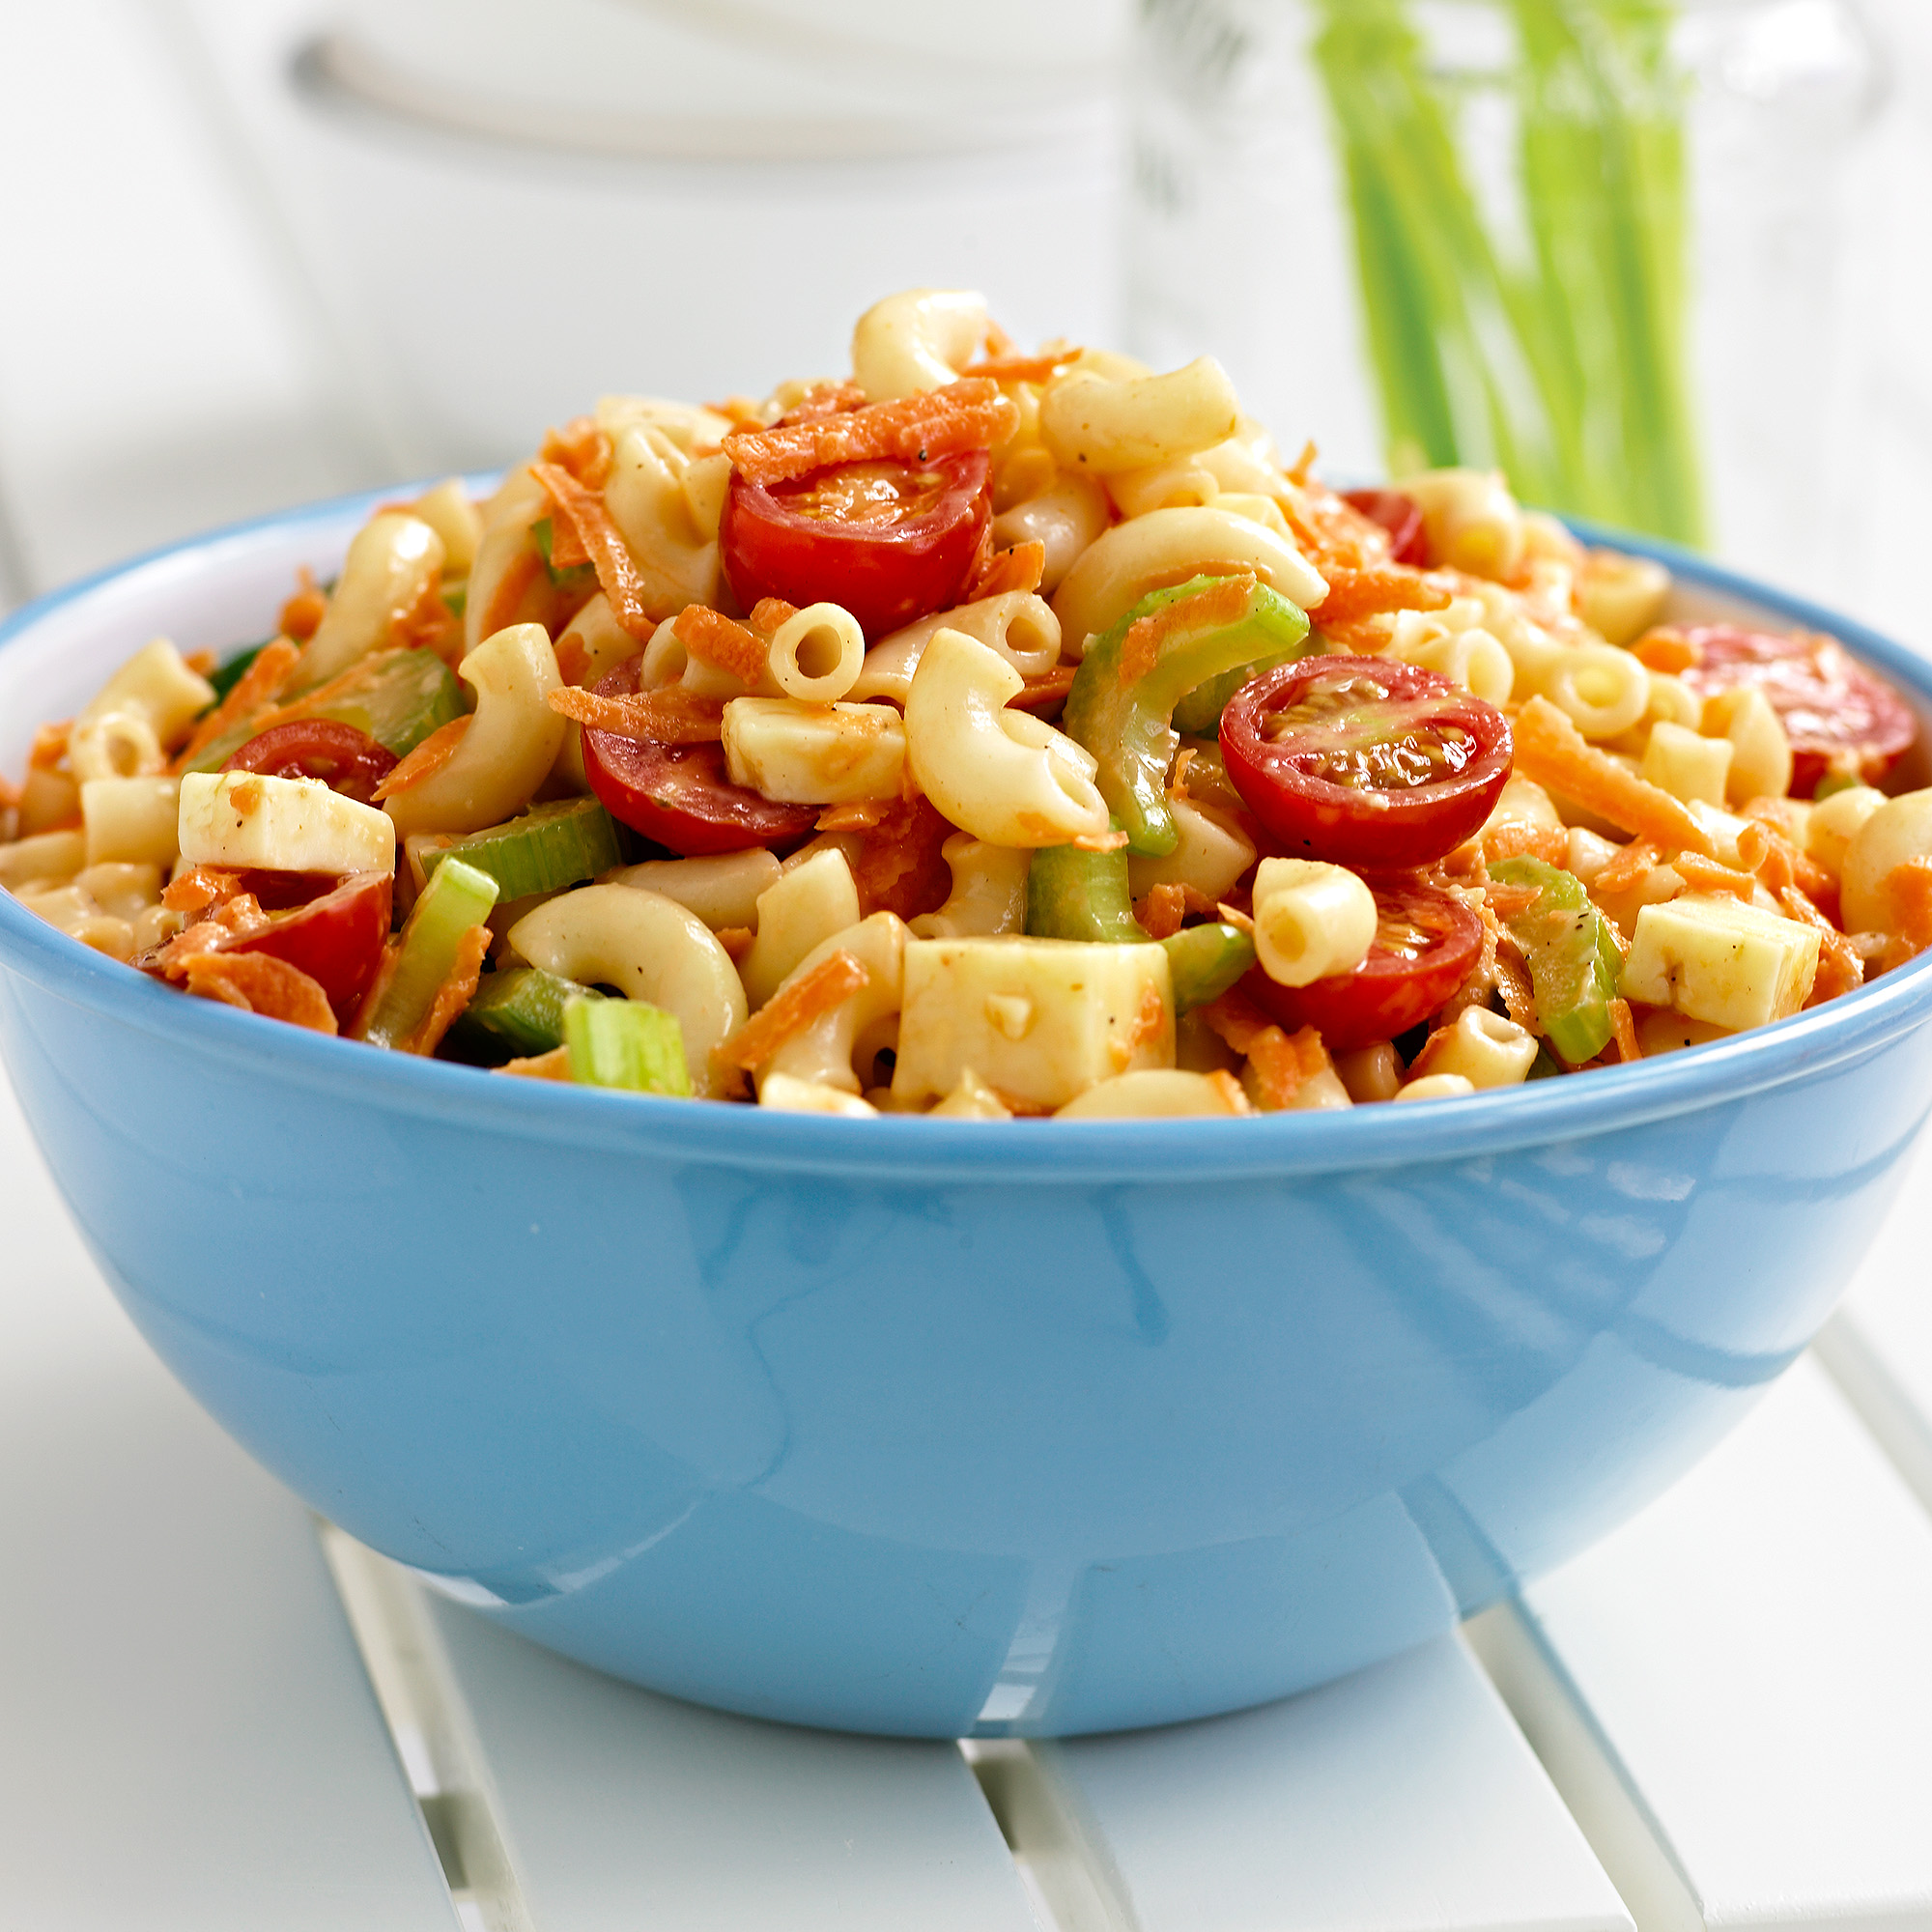 macaroni salad with cherry tomatoes in blue bowl